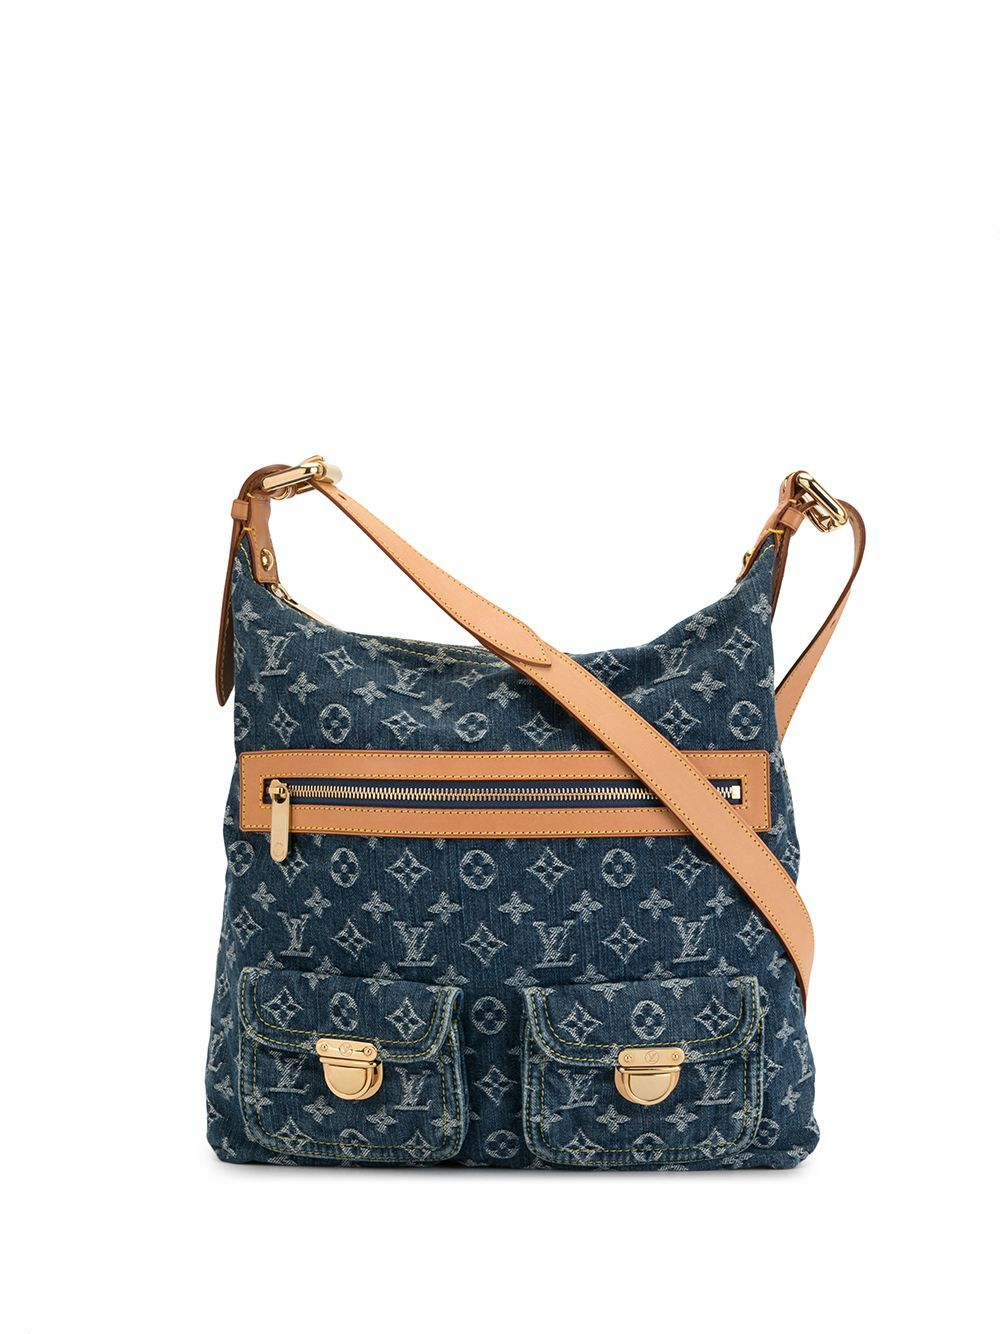 Louis Vuitton Pre Owned 2005 Baggy Gm Shoulder Bag Blue In 2020